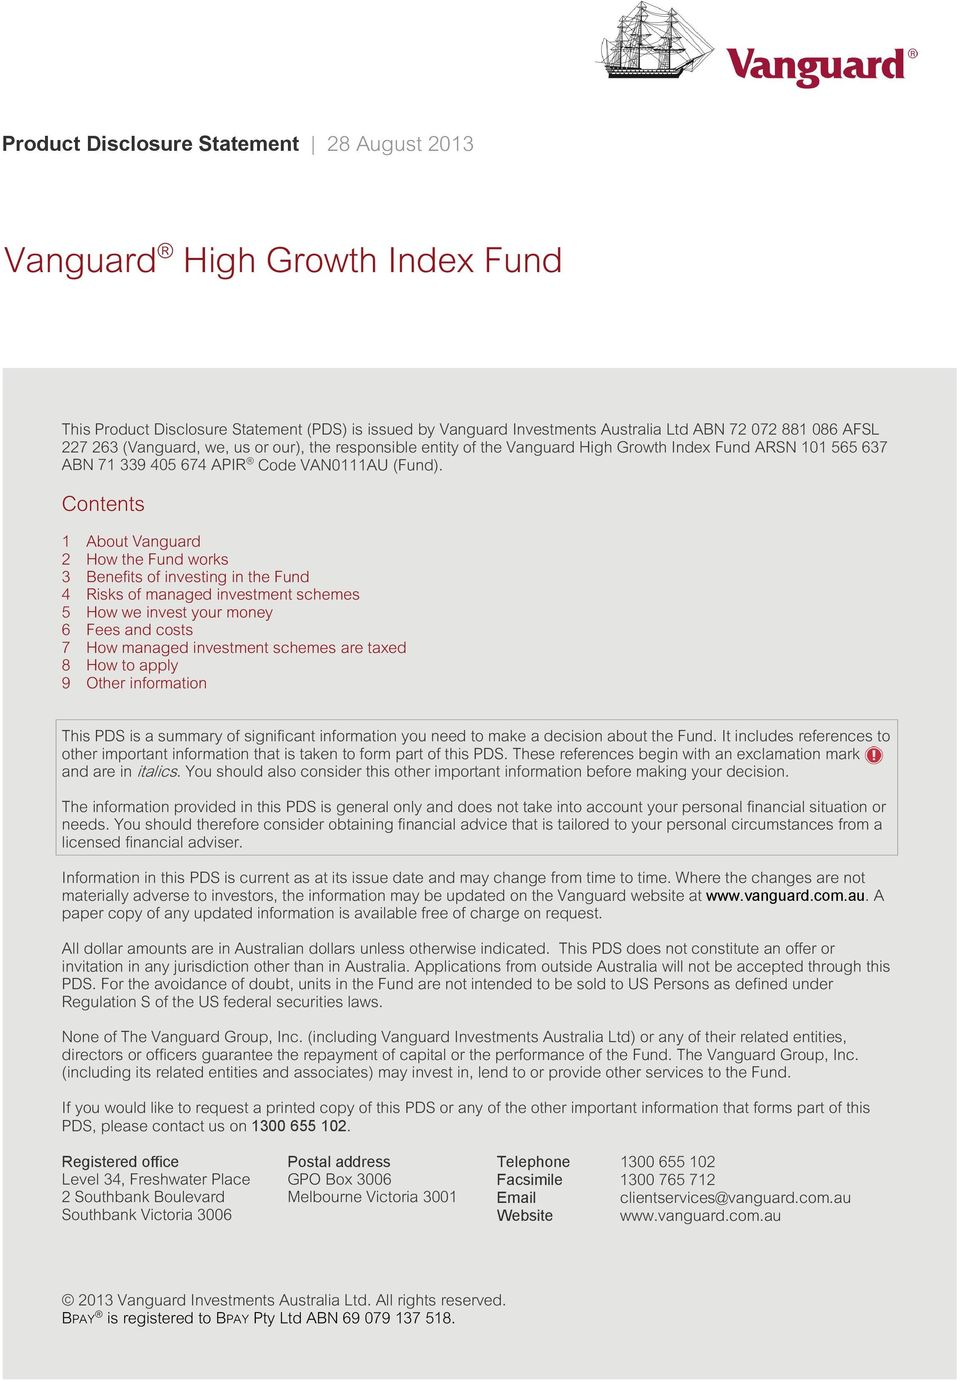 Contents 1 About Vanguard 2 How the Fund works 3 Benefits of investing in the Fund 4 Risks of managed investment schemes 5 How we invest your money 6 Fees and costs 7 How managed investment schemes